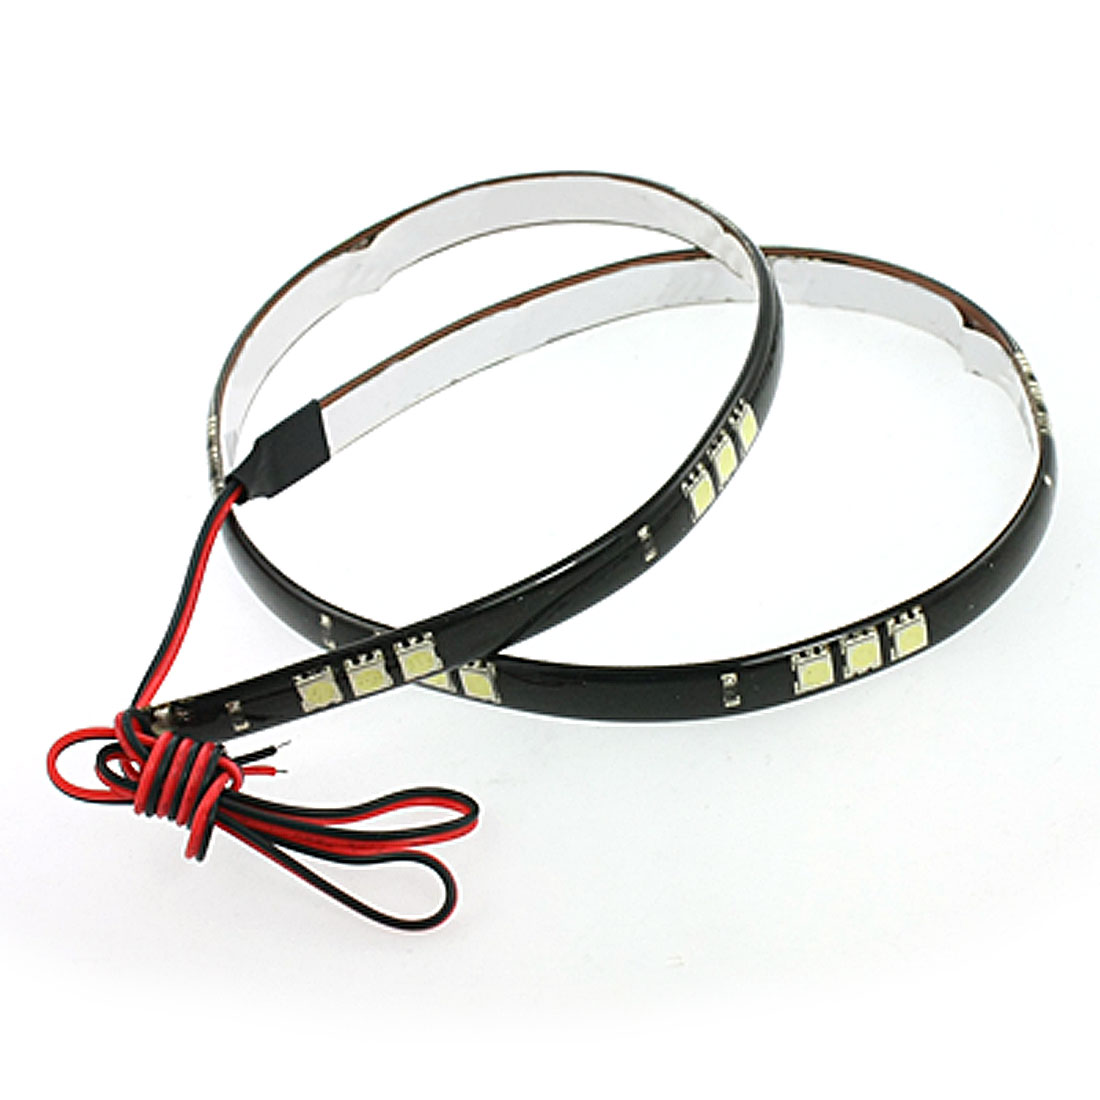 "60CM 24"" 5050 30 SMD Waterpoof Flexible LED Light Strip White for Car"